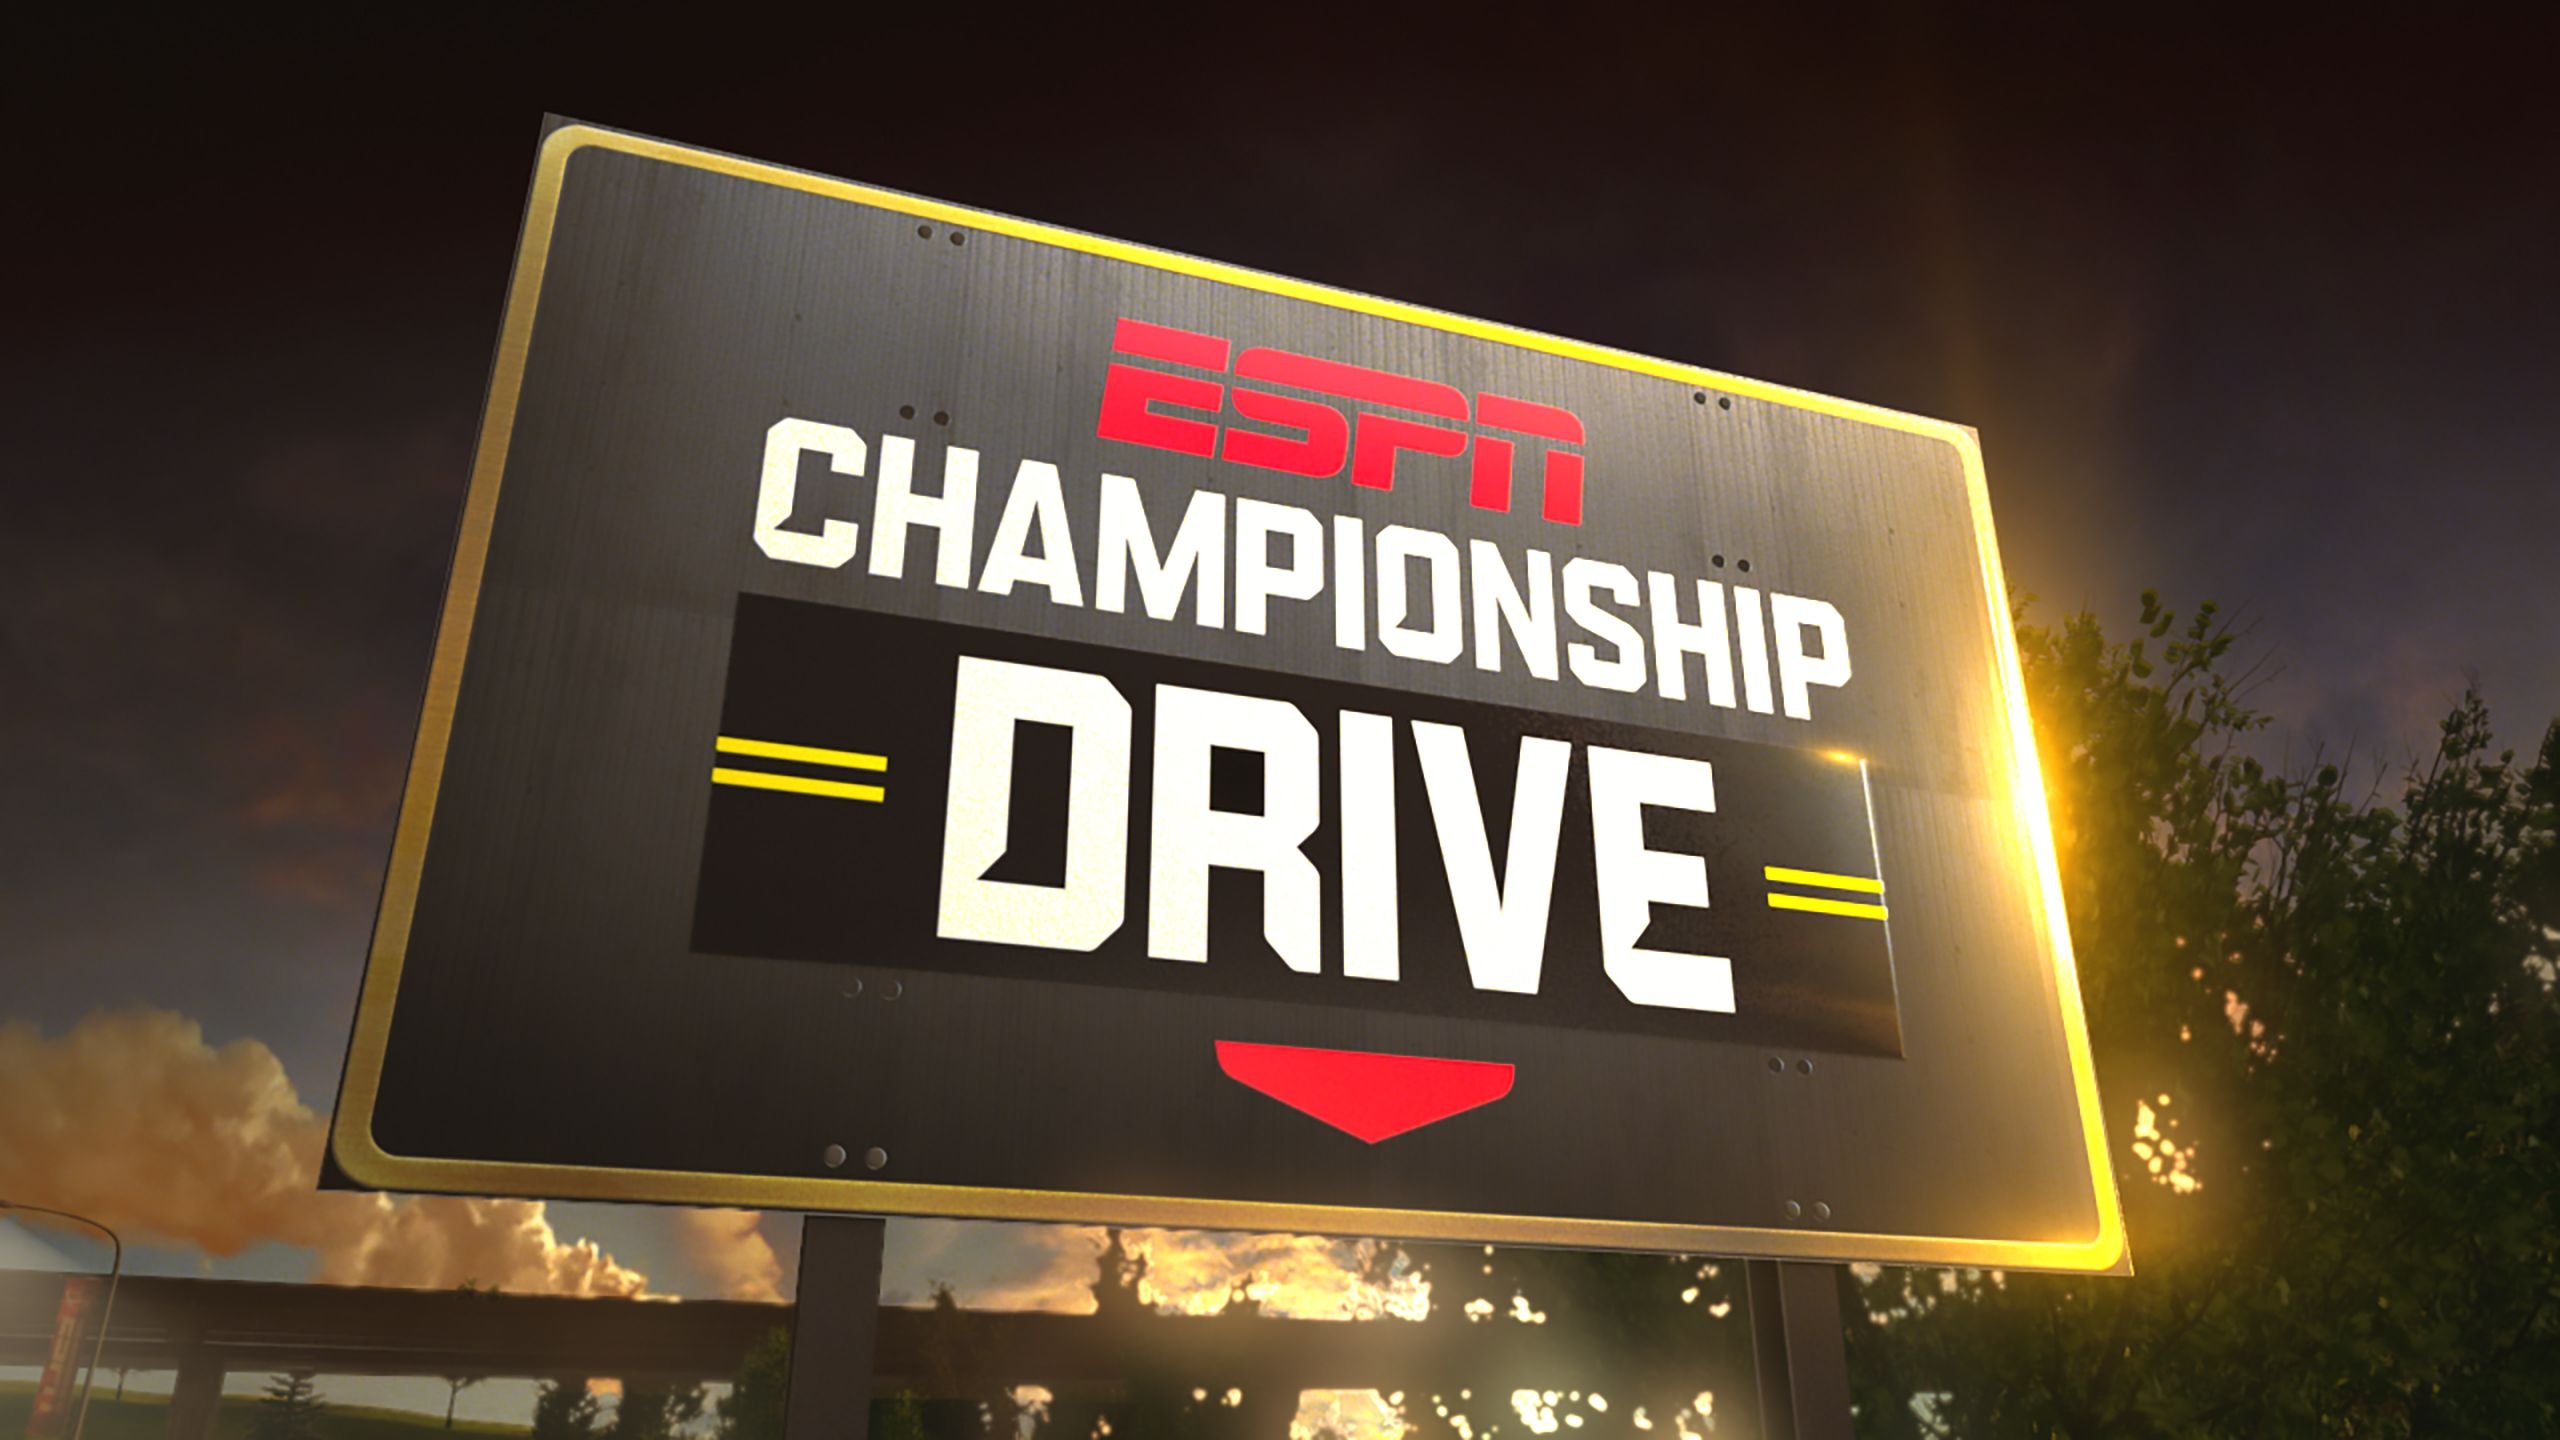 Sun, 10/15 - Championship Drive: Who's In? Presented by AT&T